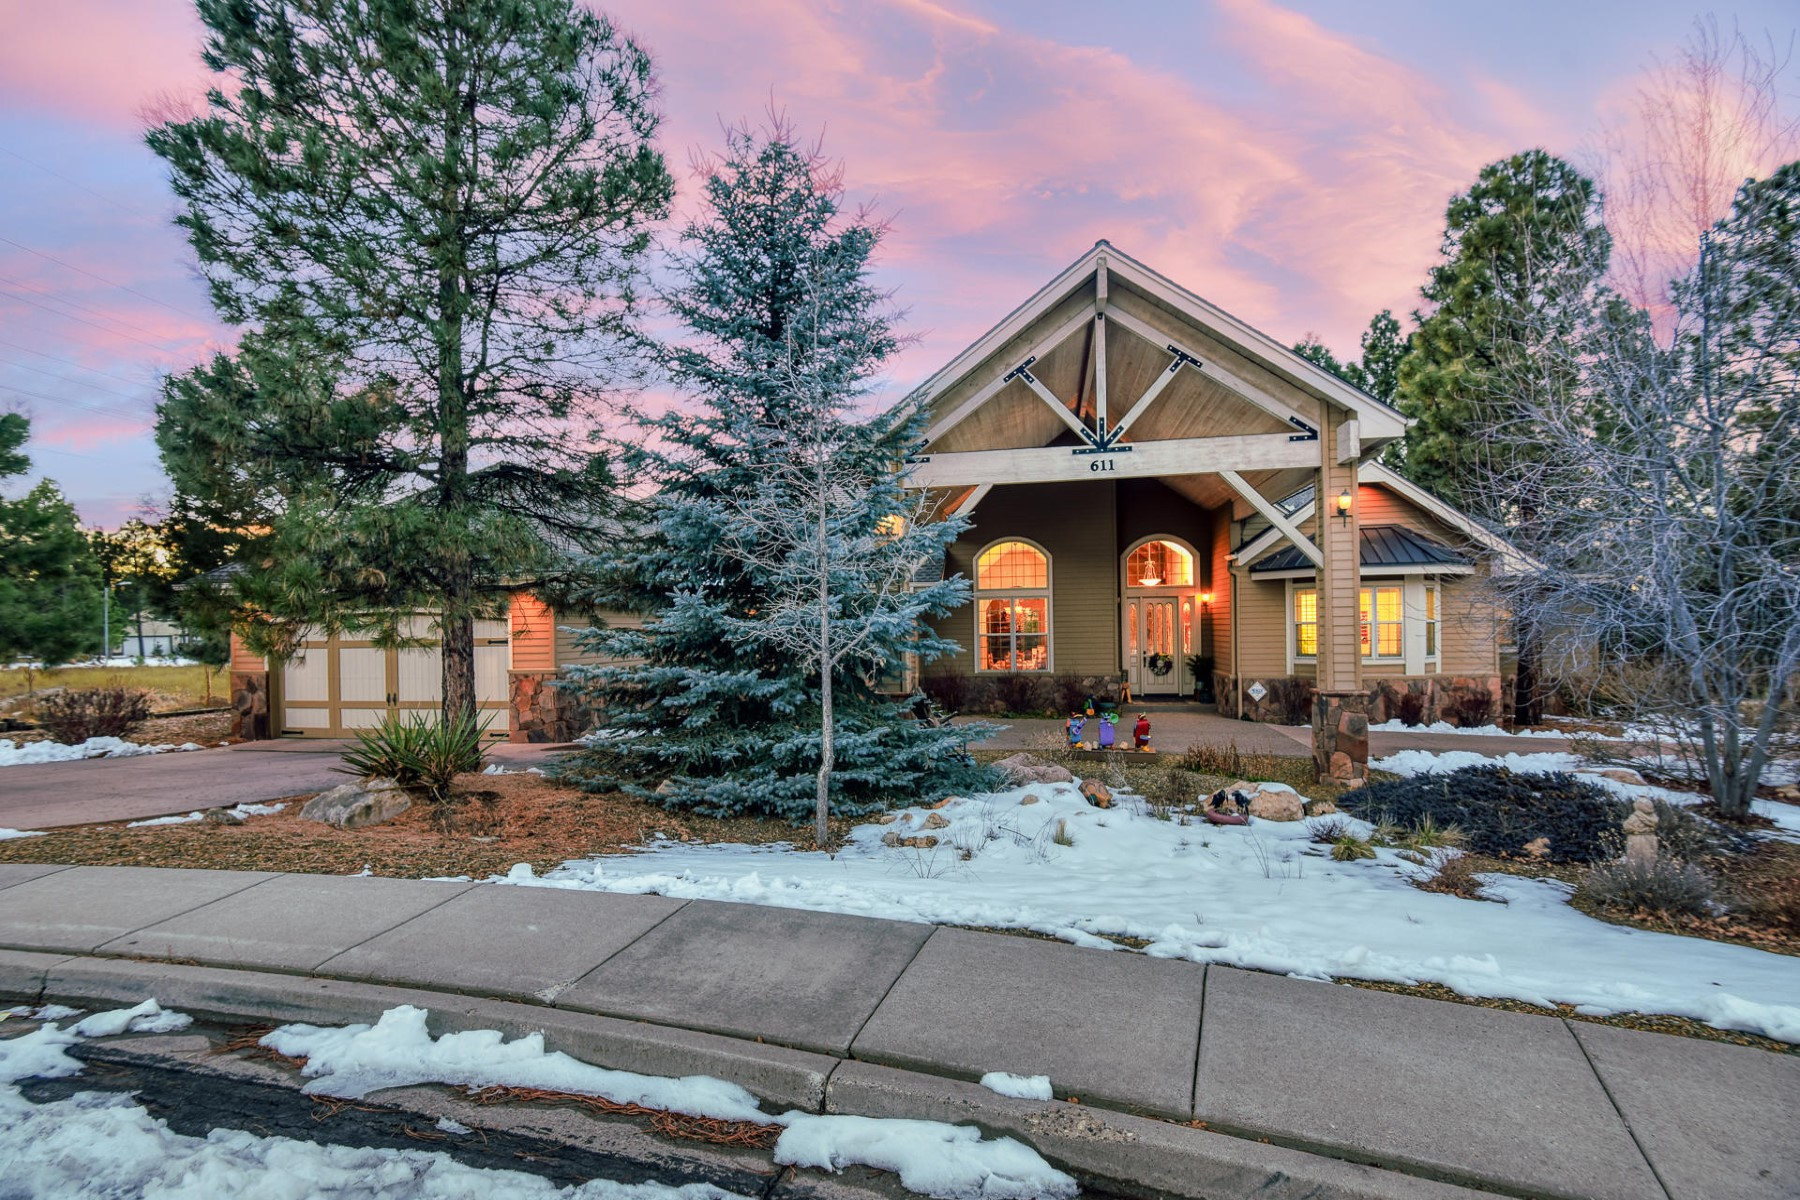 single family homes for Active at Beautiful Single Level Home 611 N Lone Oak Way Flagstaff, Arizona 86004 United States